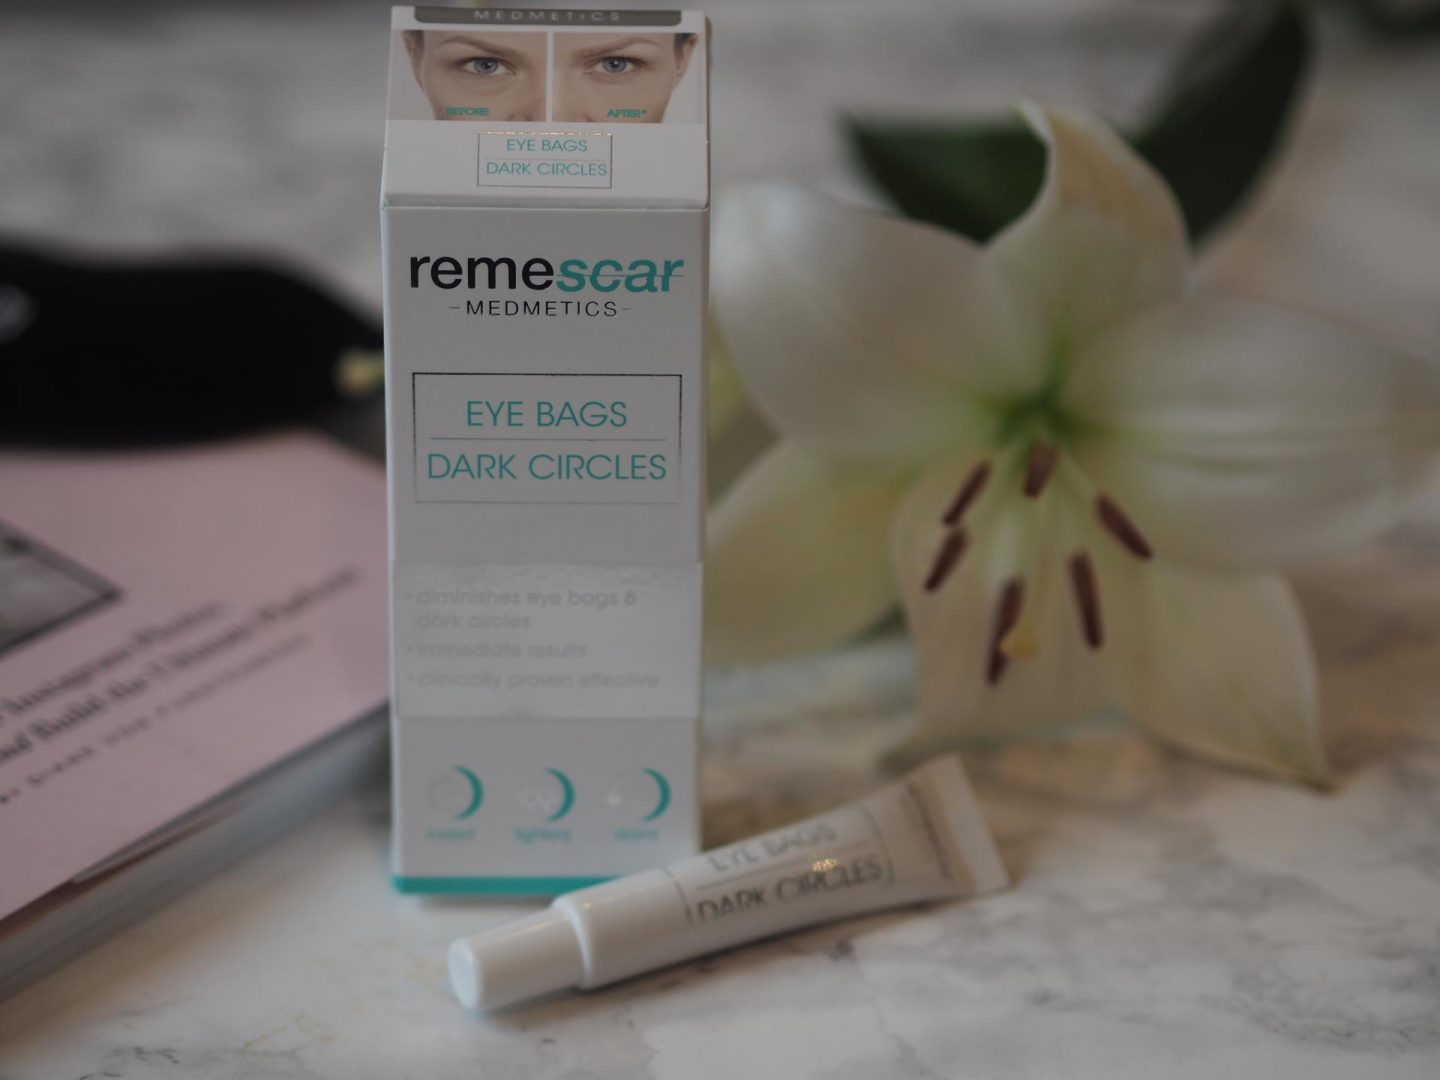 Remescar - Product: Eye Bags Dark Circles